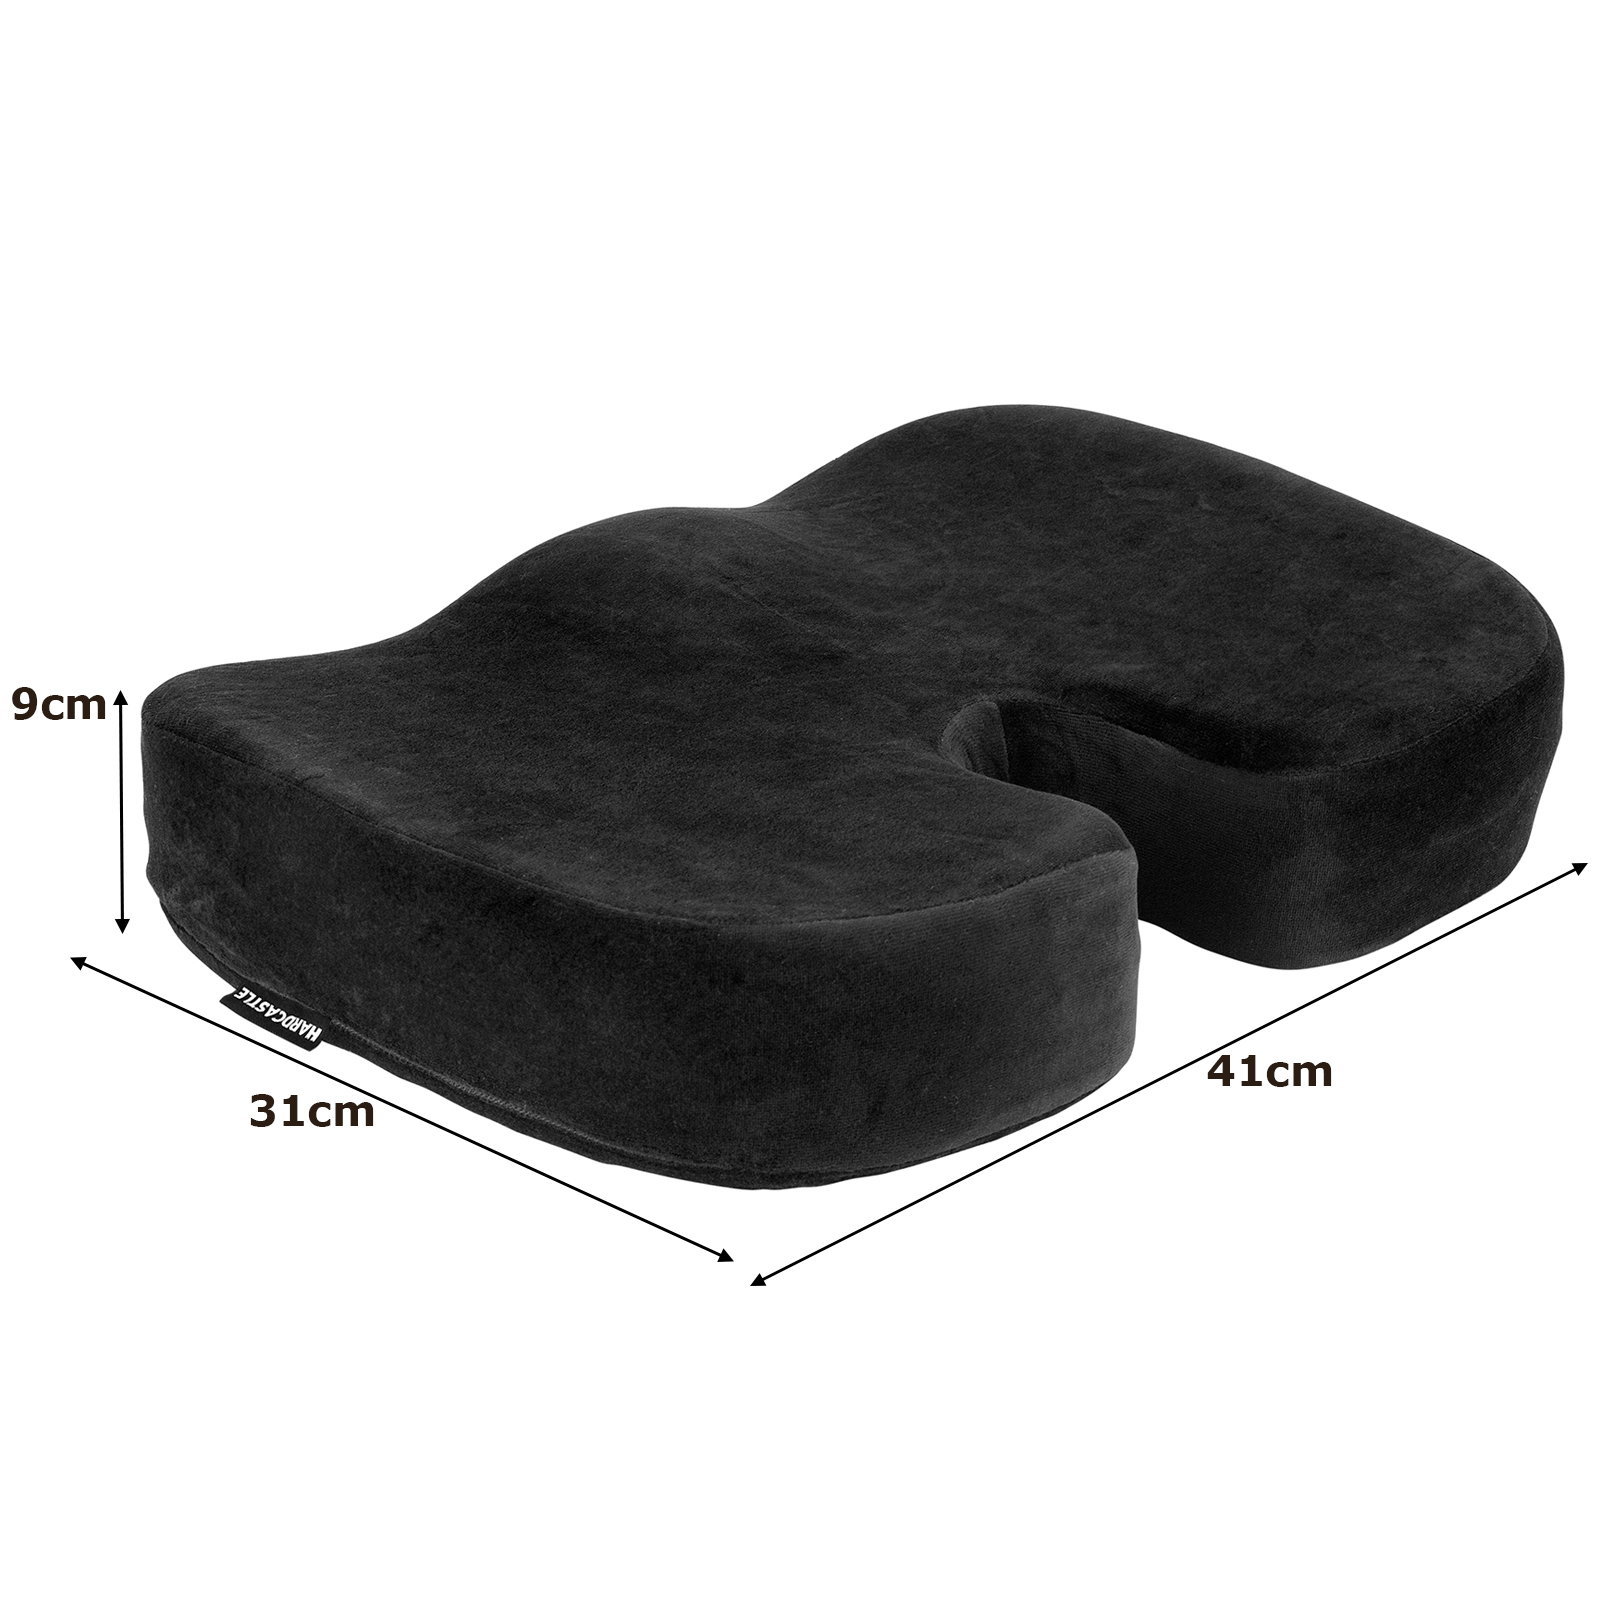 posture support seat cushion antique thonet bentwood rocking chair plush padded black memory foam base